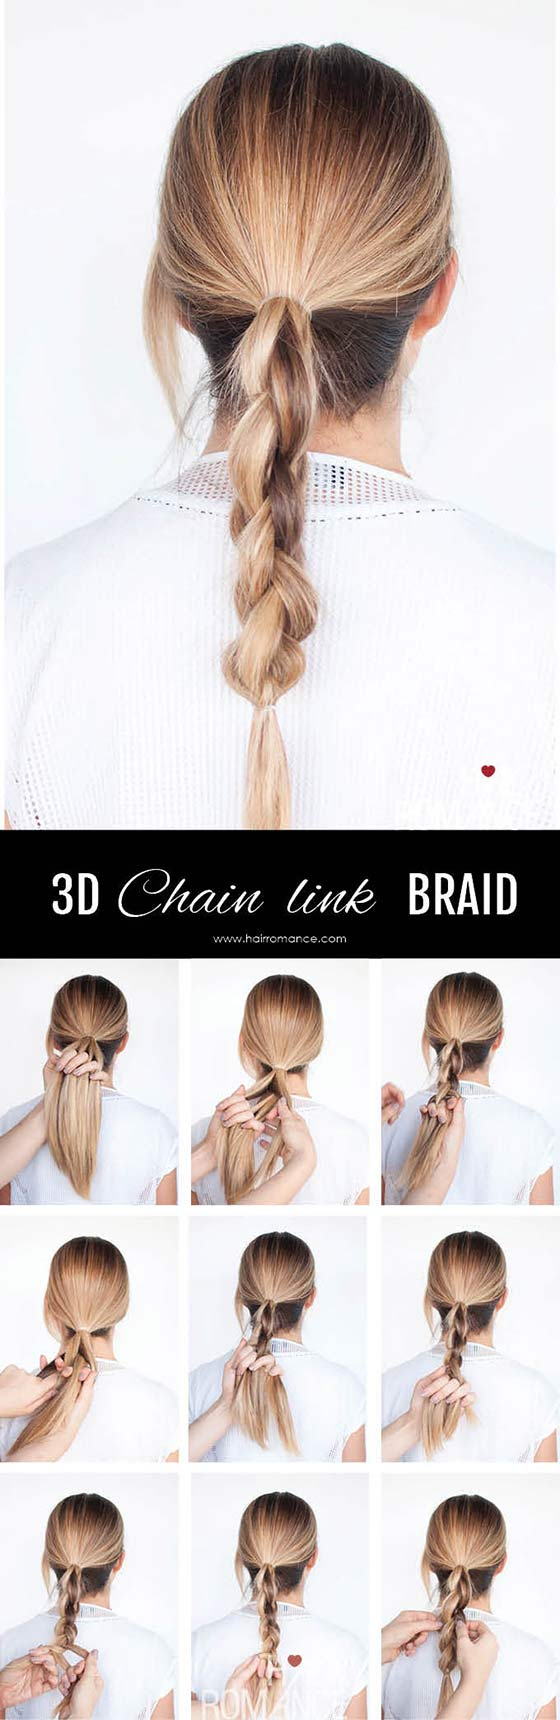 3D-Chain-Link-Braid